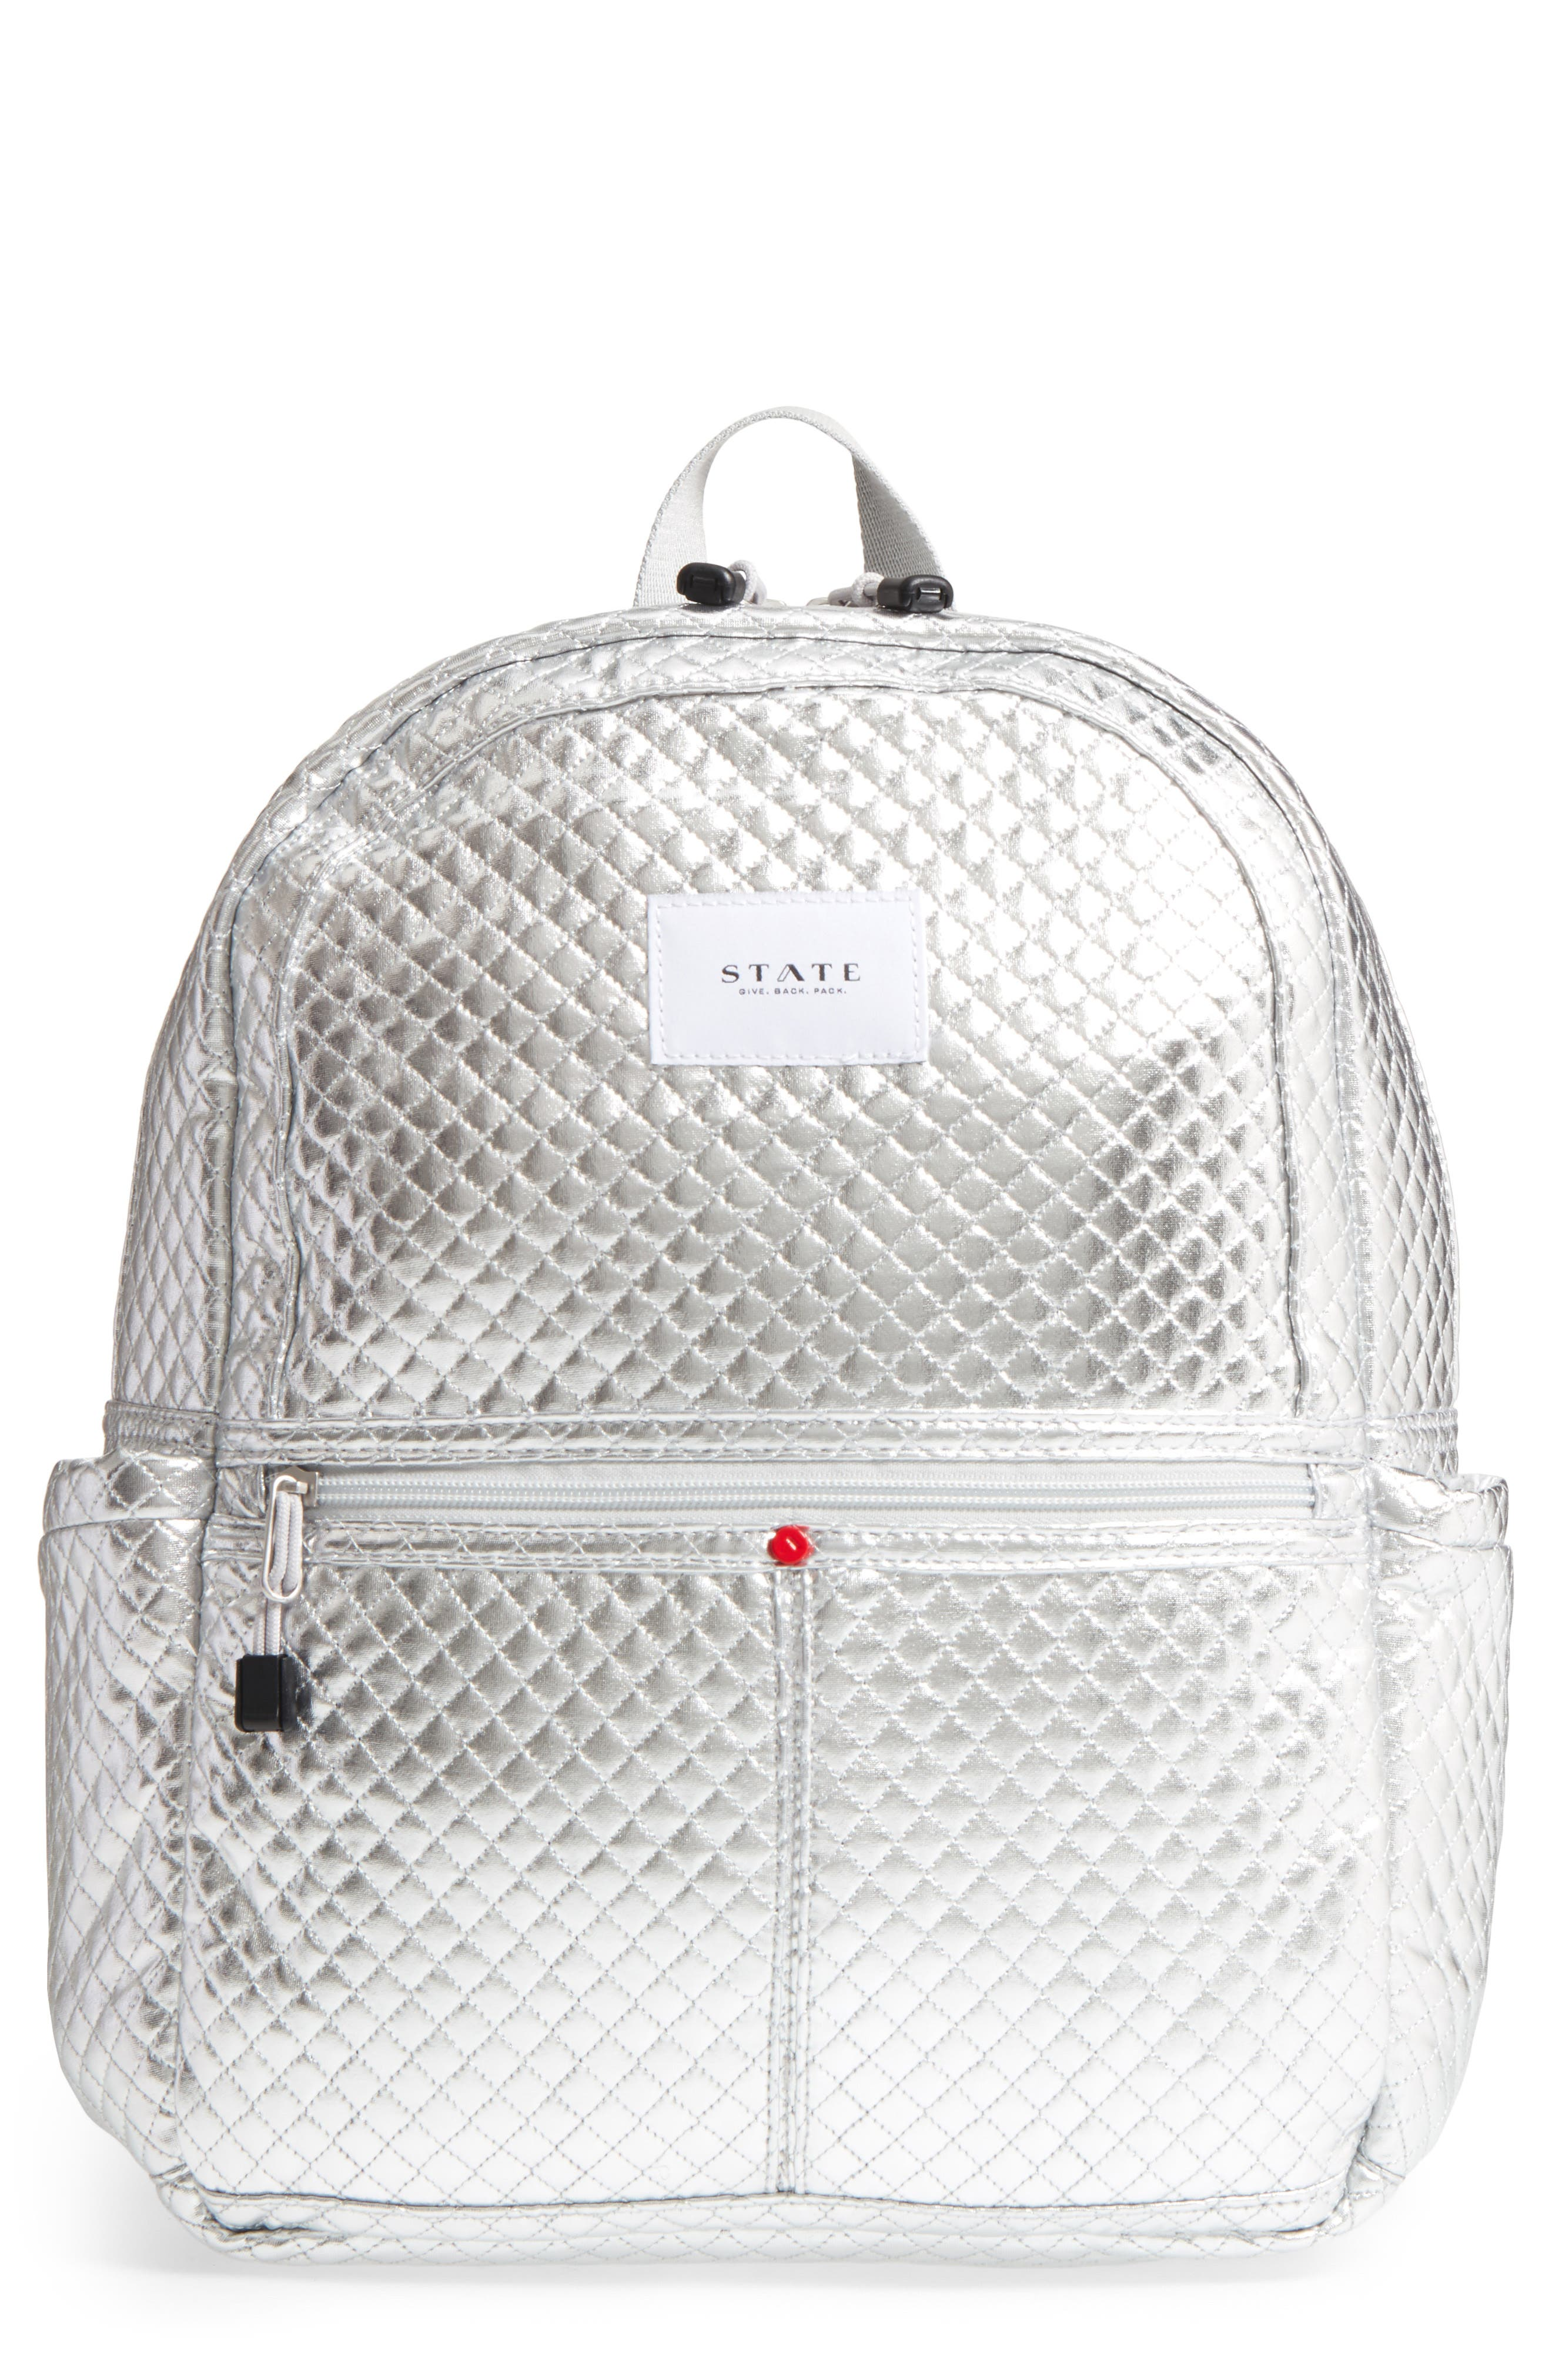 Quilted Metallic Kane Backpack,                         Main,                         color, 041